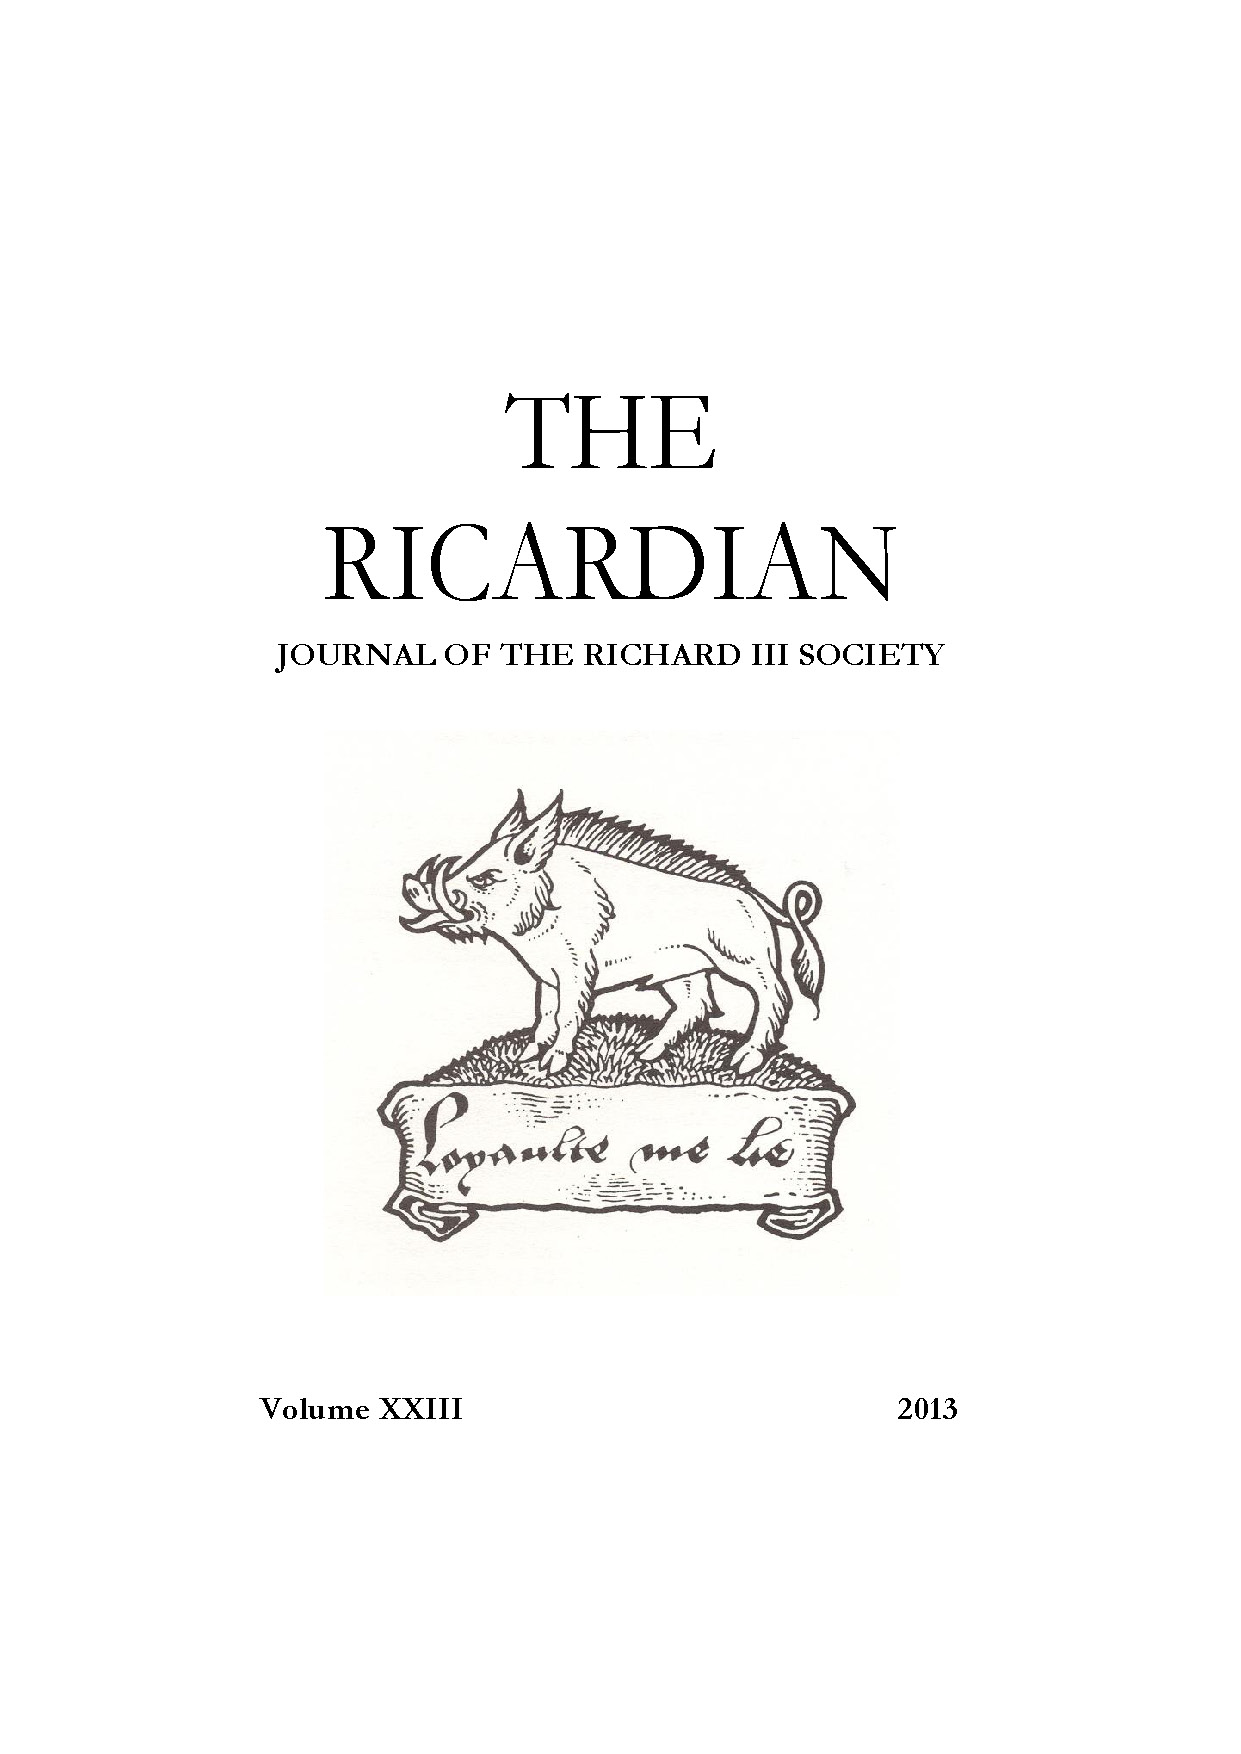 richard iii society learn more